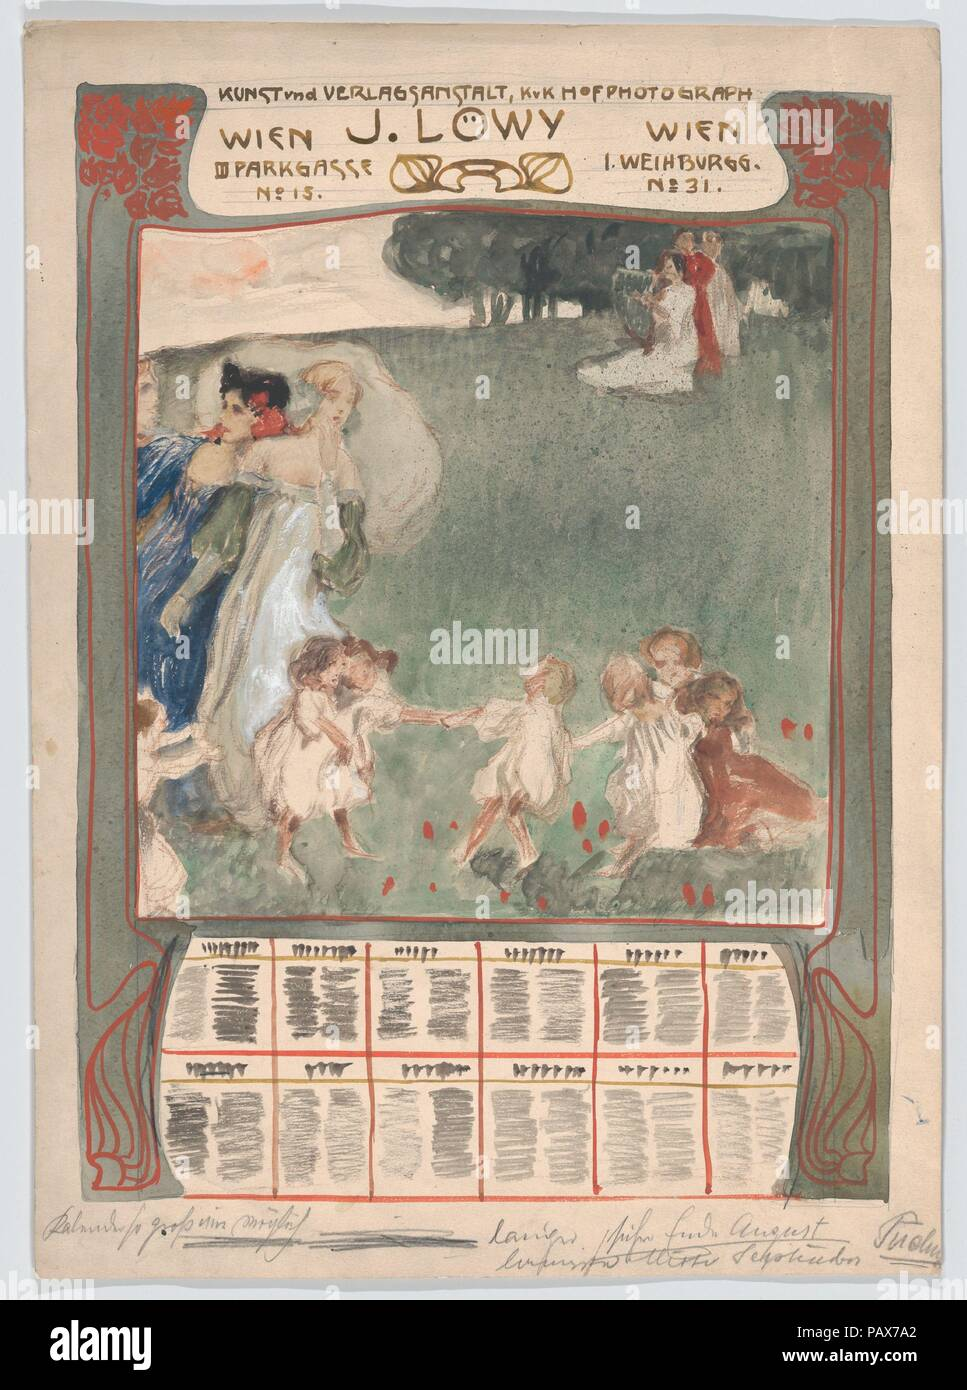 Design for a poster of calendar for J. Löwy, Vienna. Artist: Erwin Puchinger (Austrian, Vienna 1875-1944 Vienna). Dimensions: Sheet: 17 5/16 × 12 7/16 in. (43.9 × 31.6 cm). Museum: Metropolitan Museum of Art, New York, USA. - Stock Image